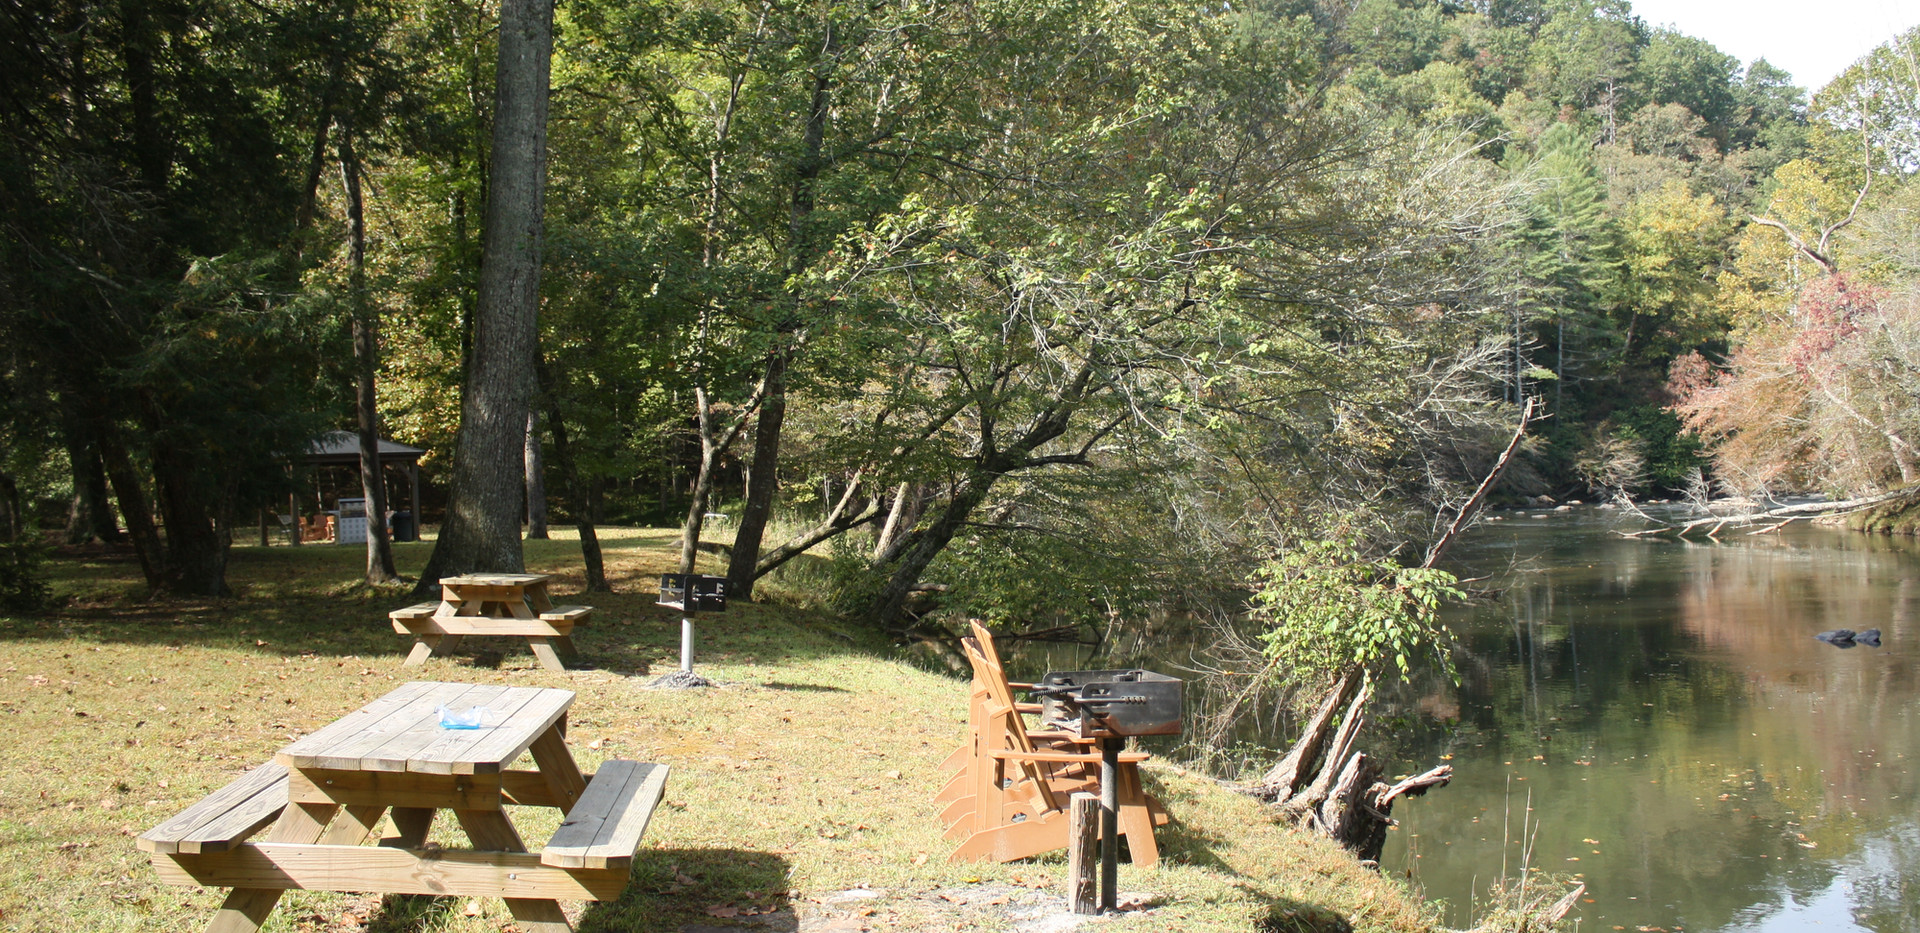 Behind Lodge - Grills & Picnic area